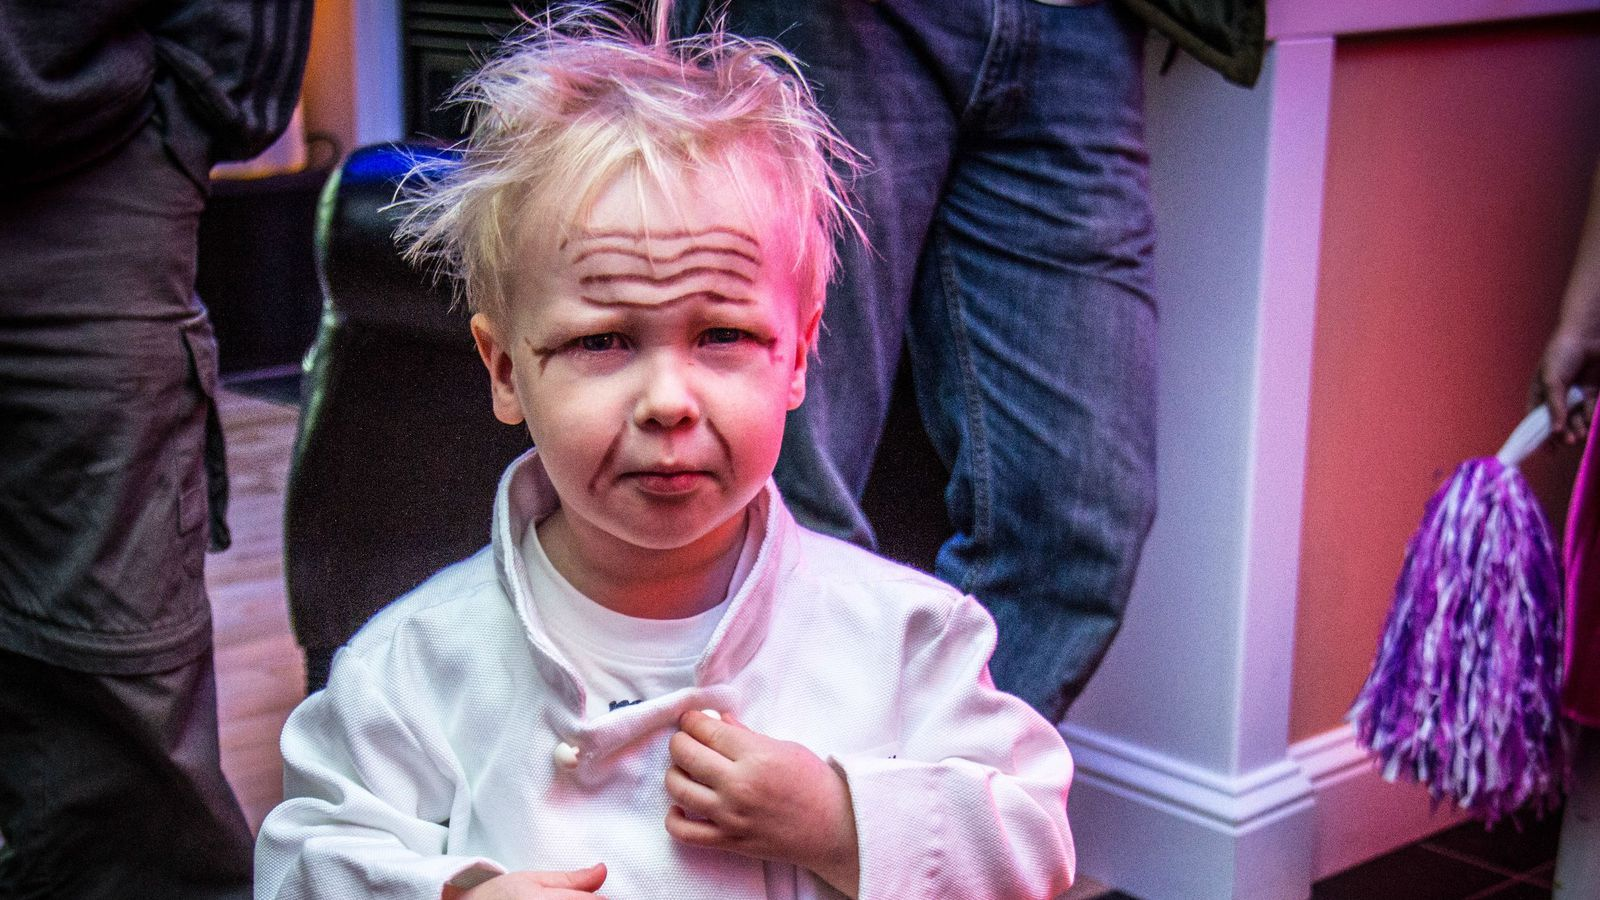 Please Dress Your Kid Up As Gordon Ramsay This Halloween